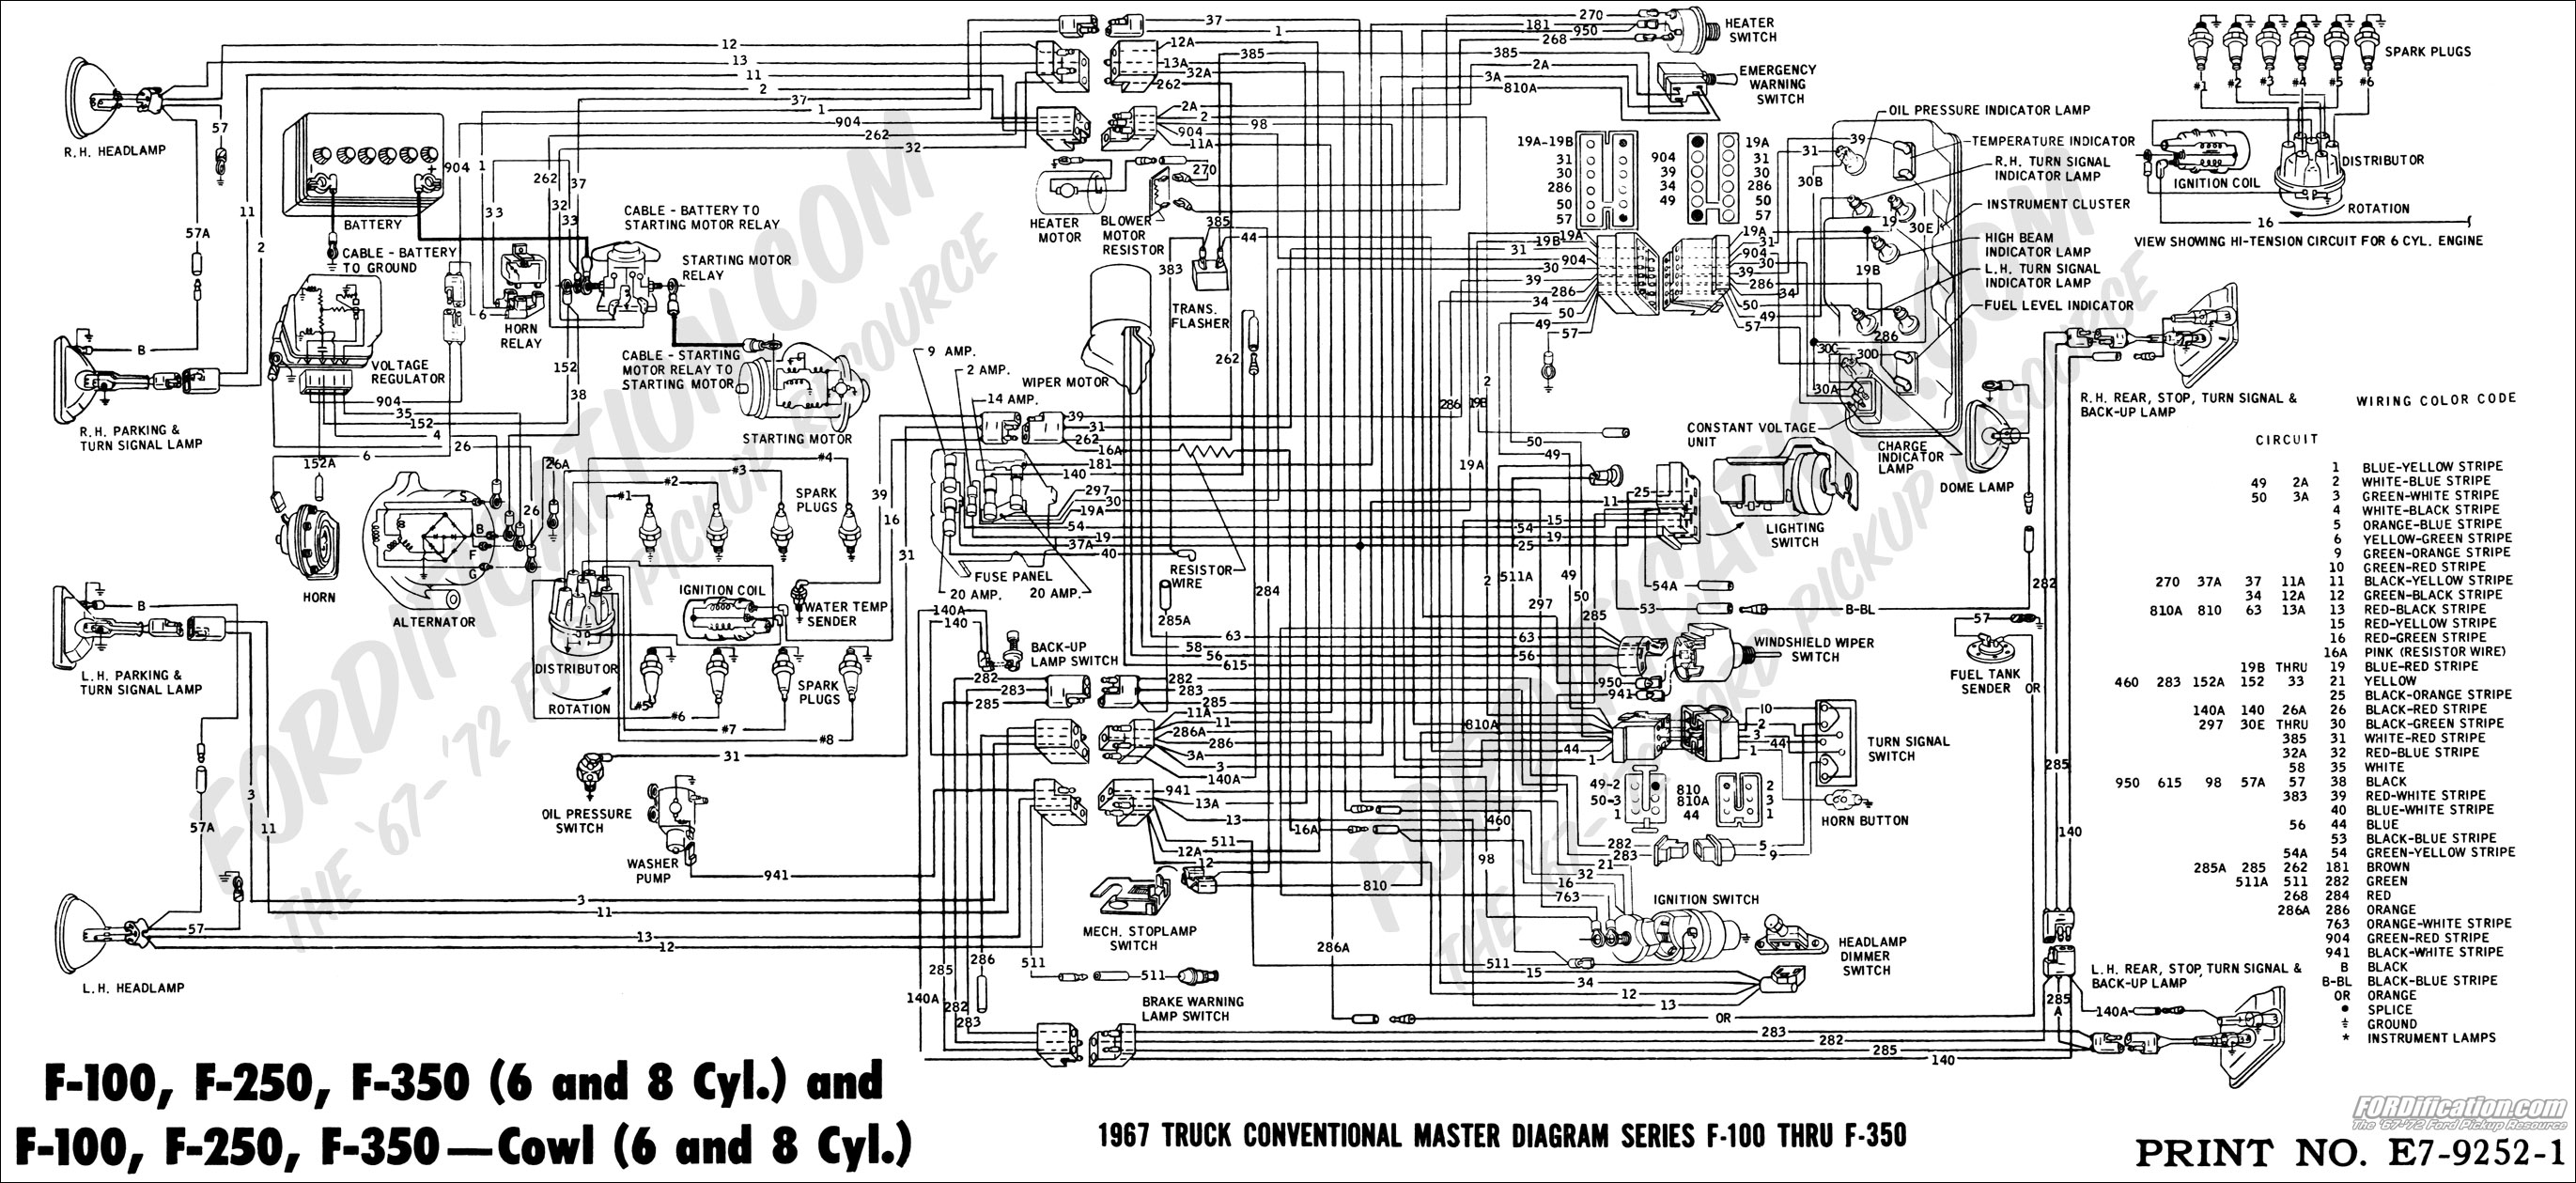 67masterdiagram ford truck technical drawings and schematics section h wiring truck wiring diagrams at bakdesigns.co